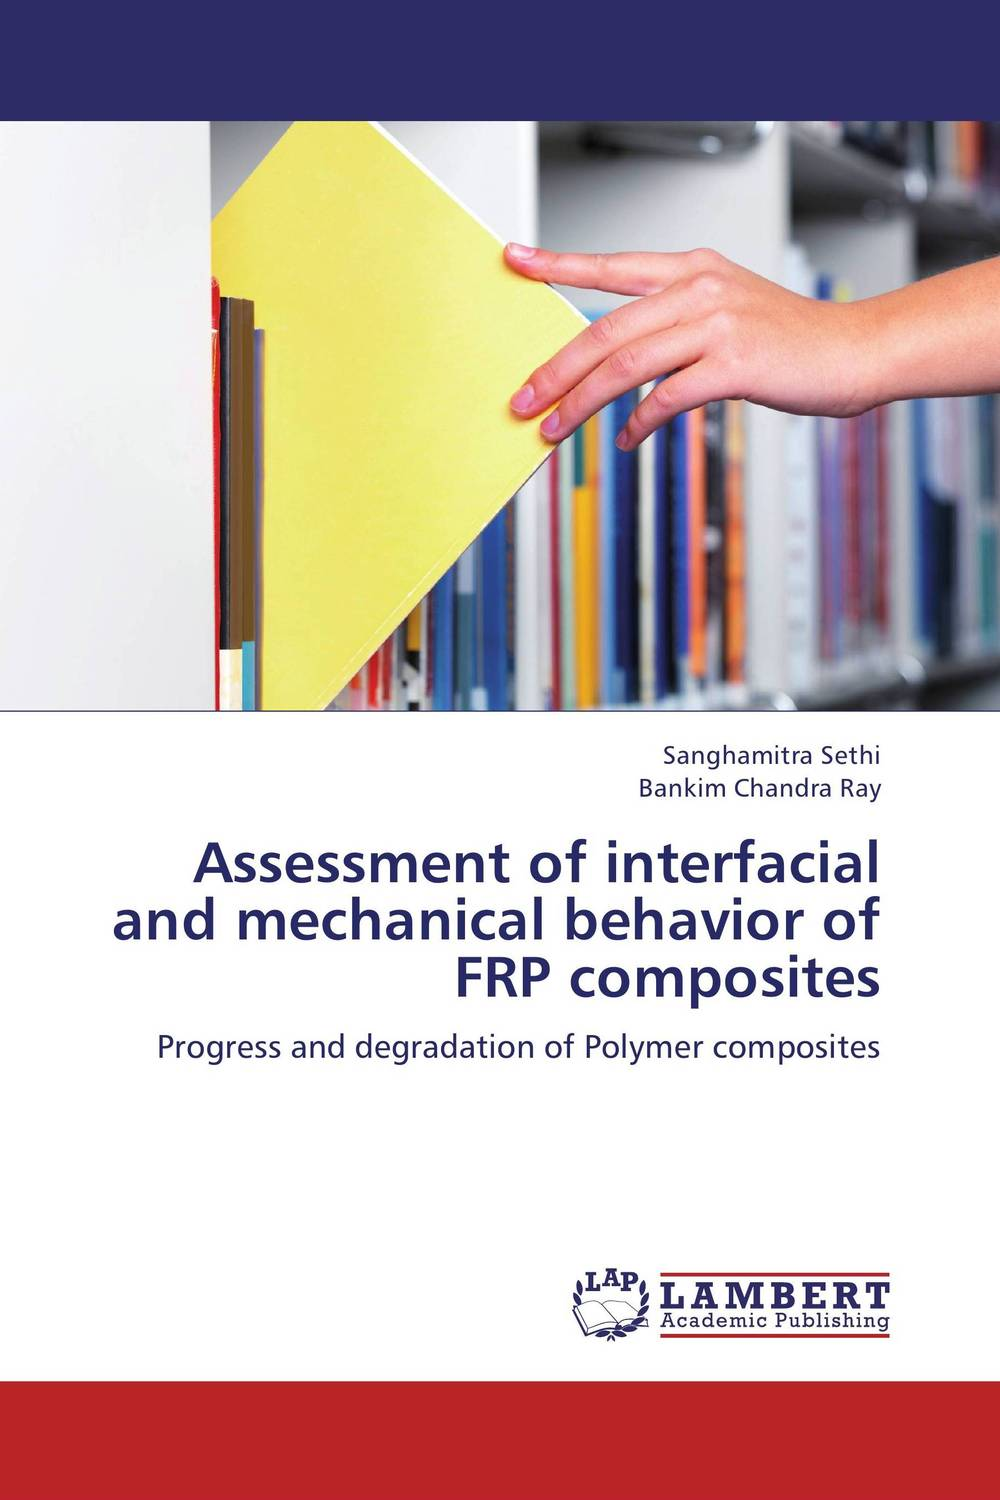 Assessment of interfacial and mechanical behavior of FRP composites treatment effects on microtensile bond strength of repaired composite